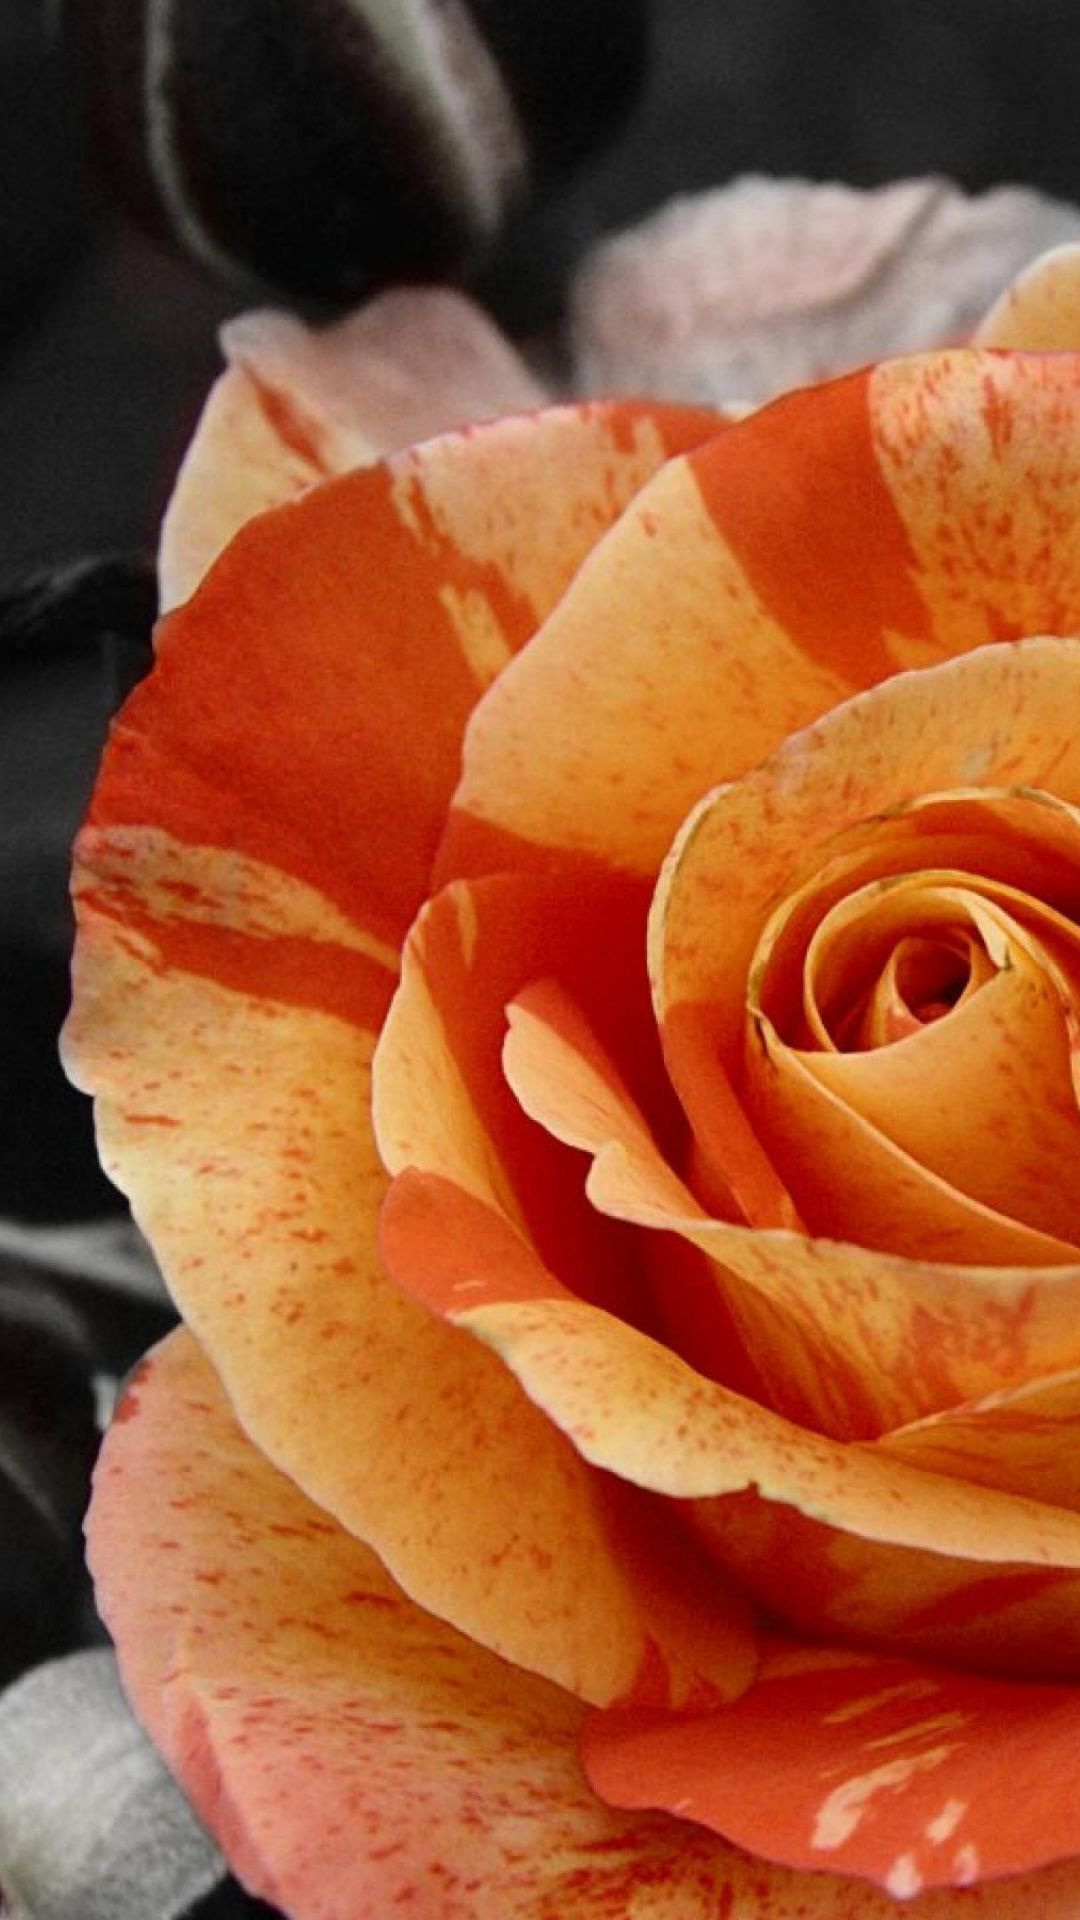 1080x1920 Orange Rose Black Background Desktop Flowers Ultra Hd Wallpapers ...